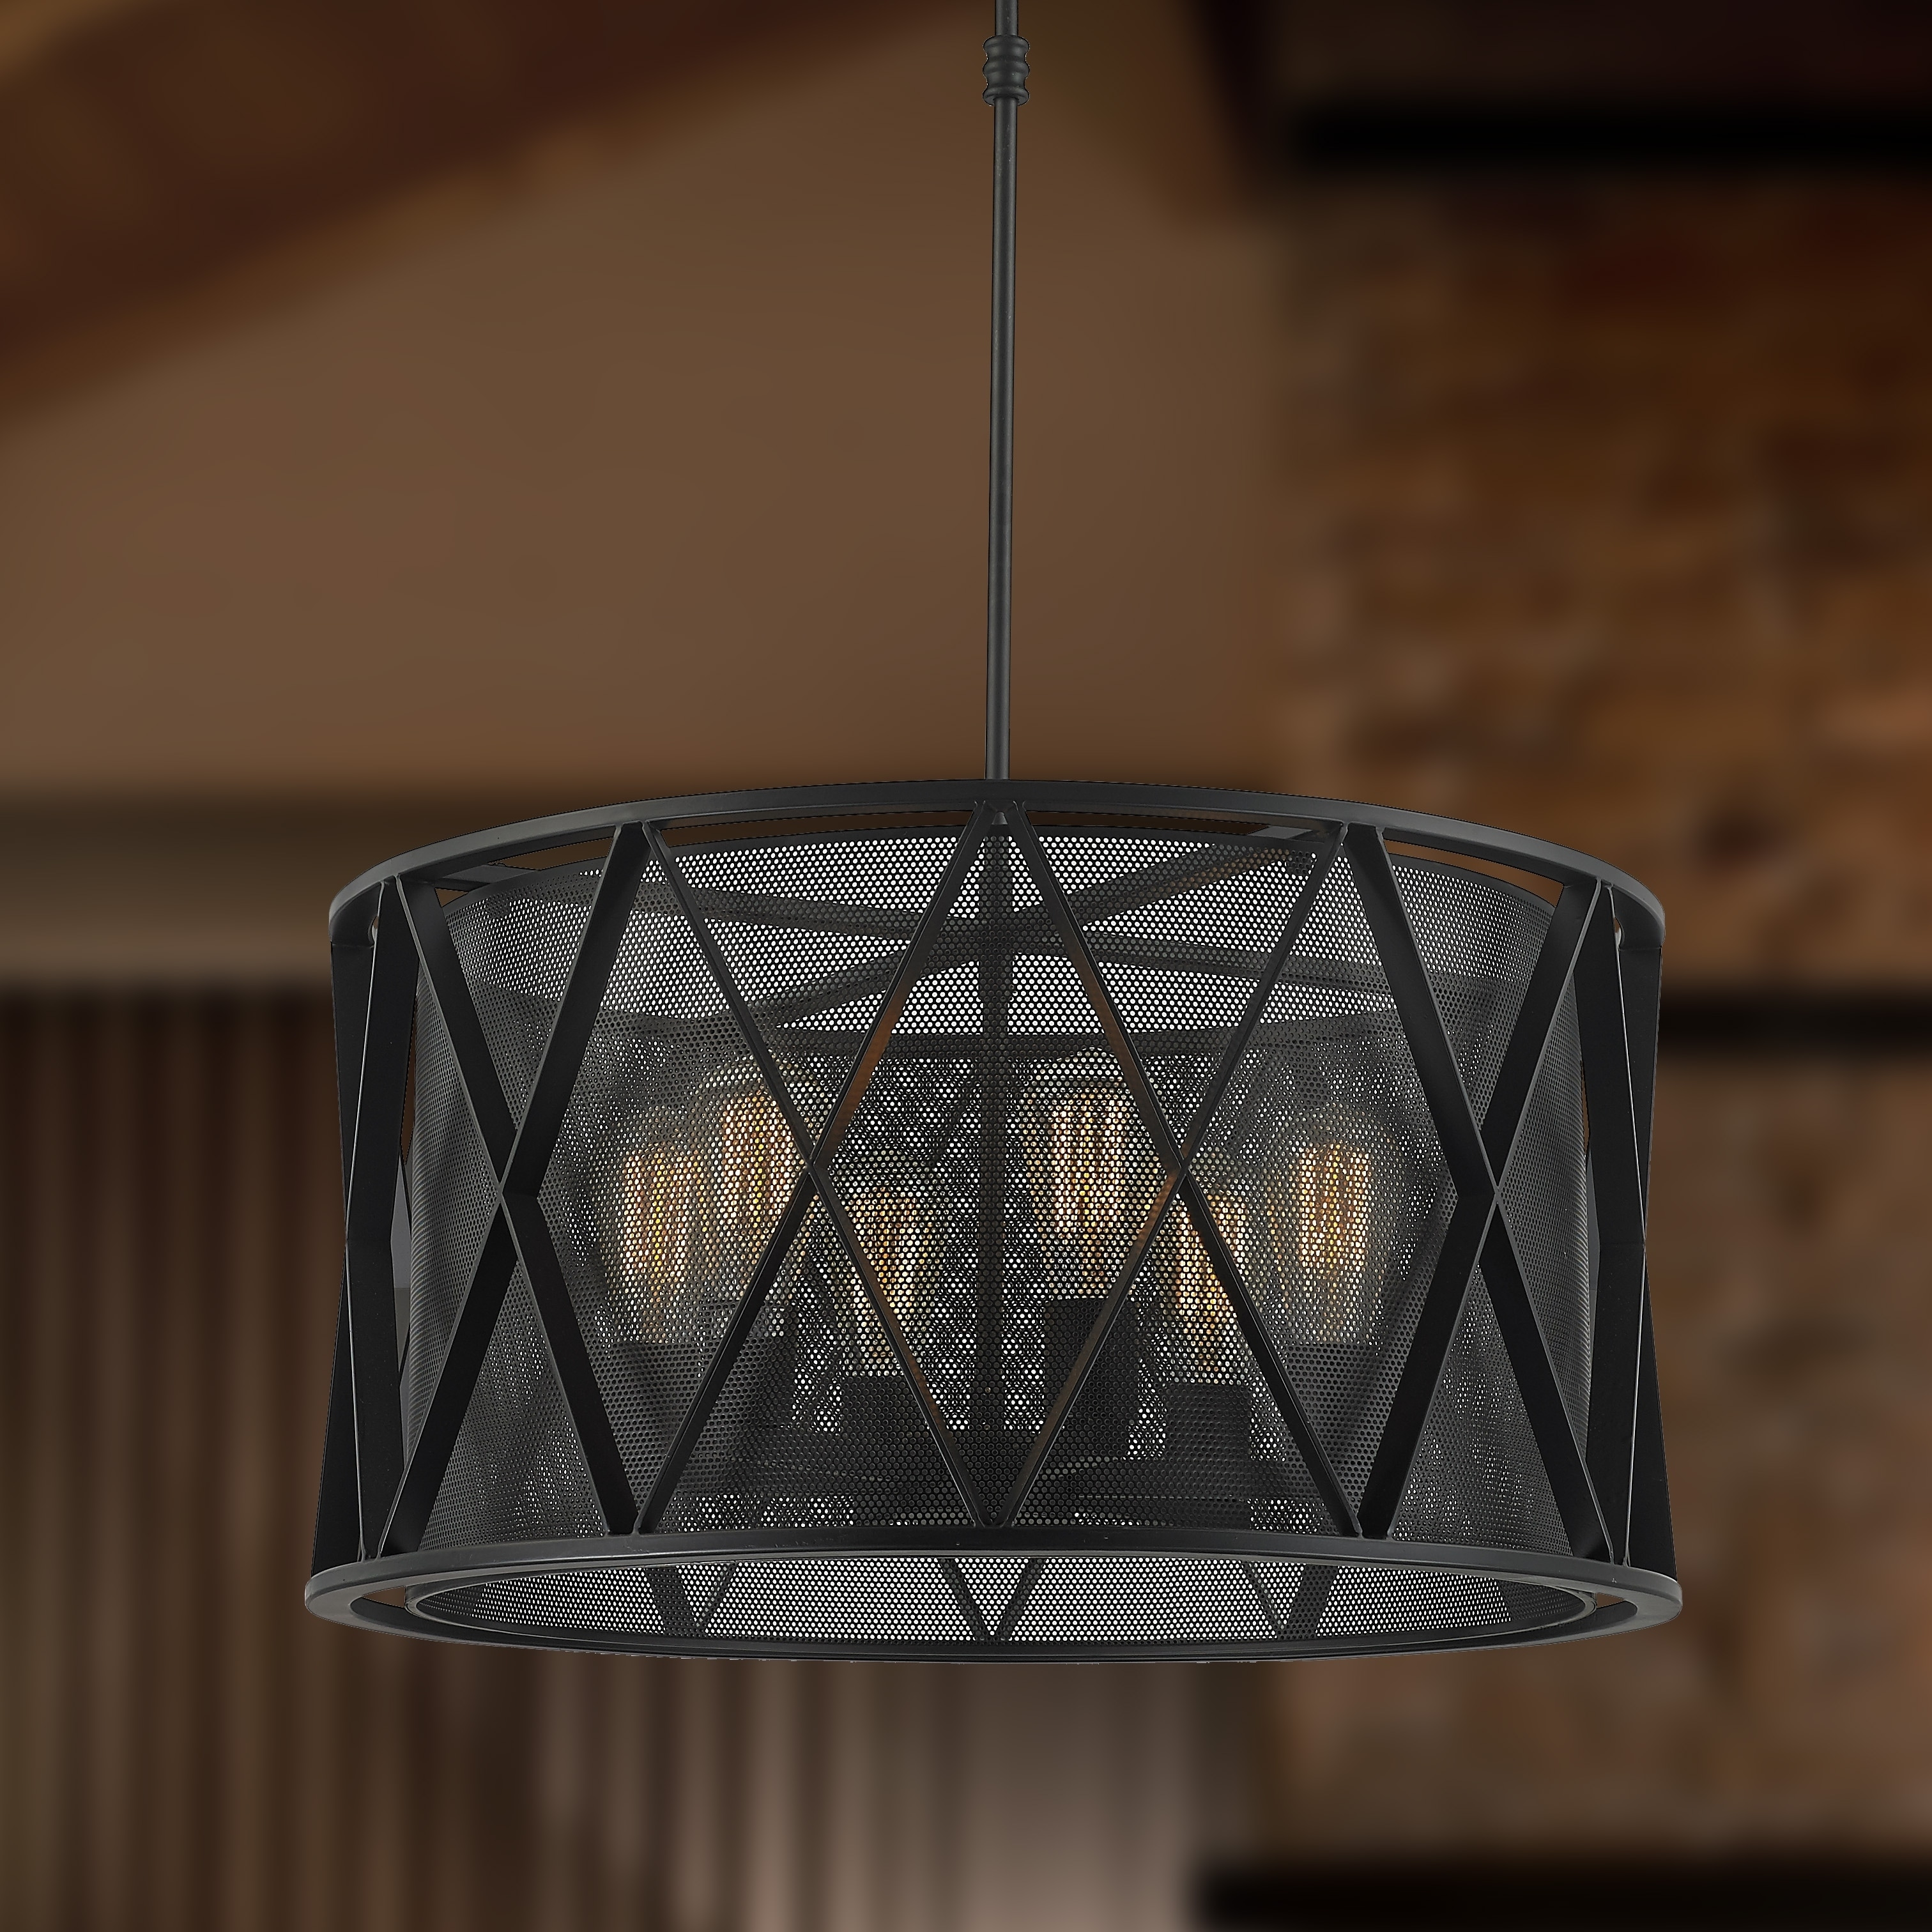 Shop Taiko Collection 6 Light Mesh Drum Shade Pendant Light in Matte ...